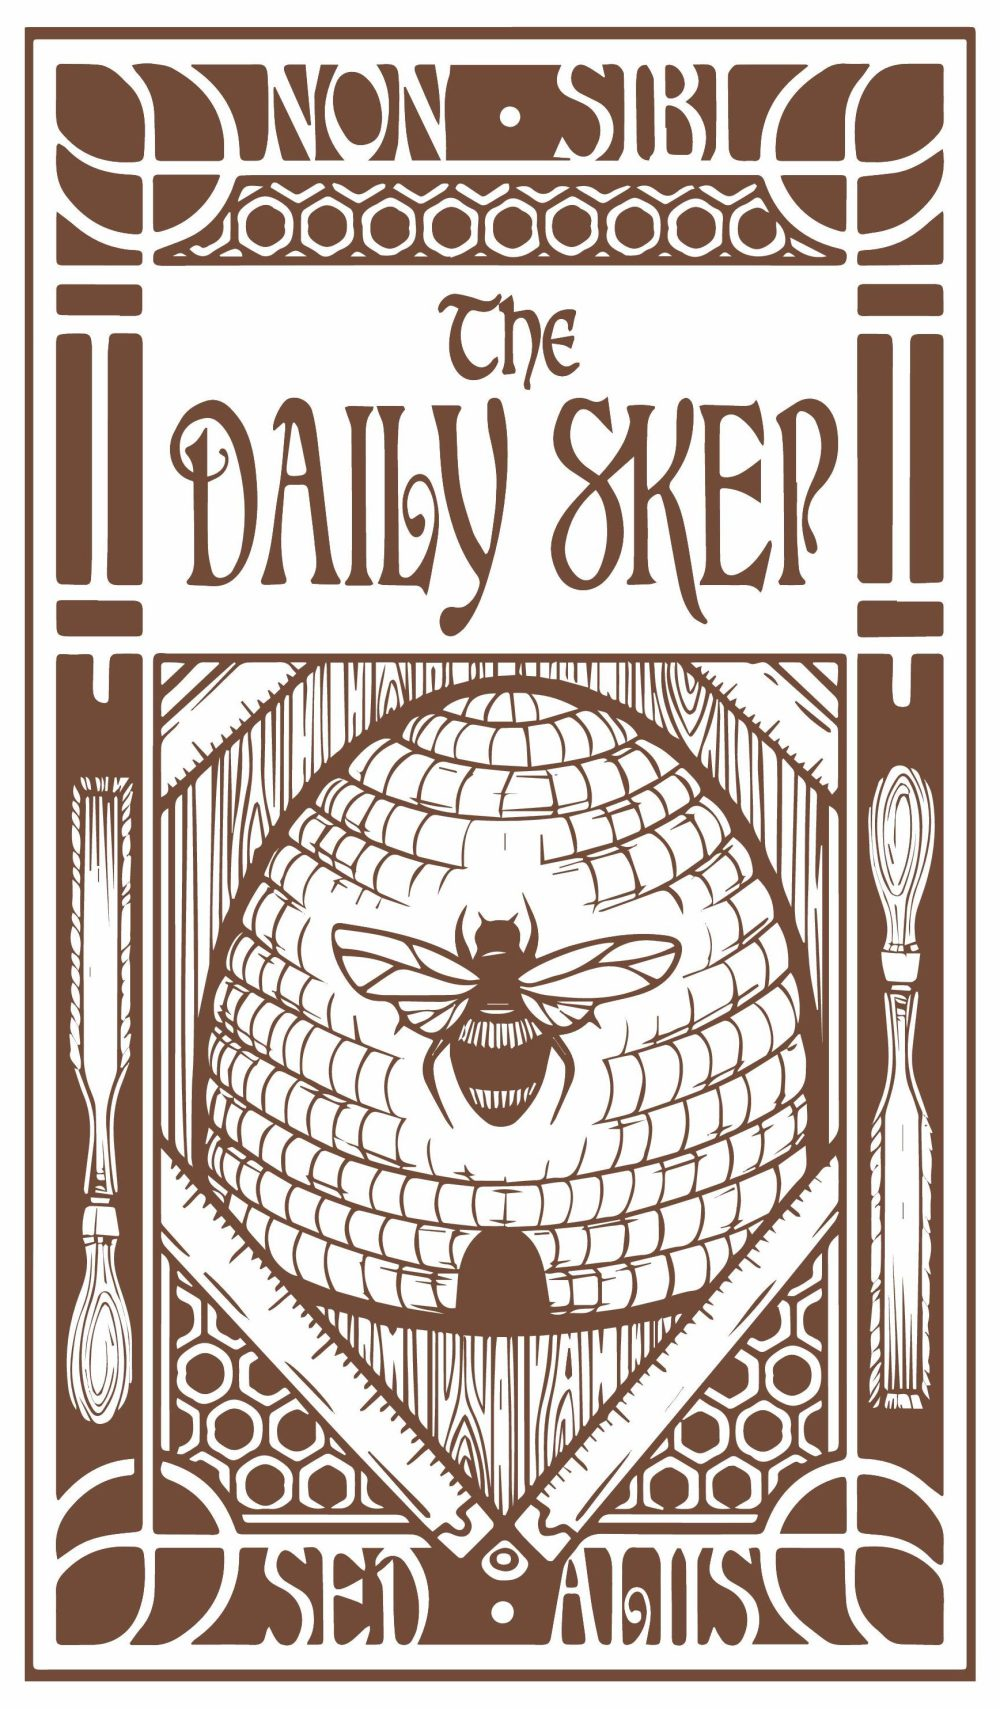 cropped-daily-skep-logo-1.jpg